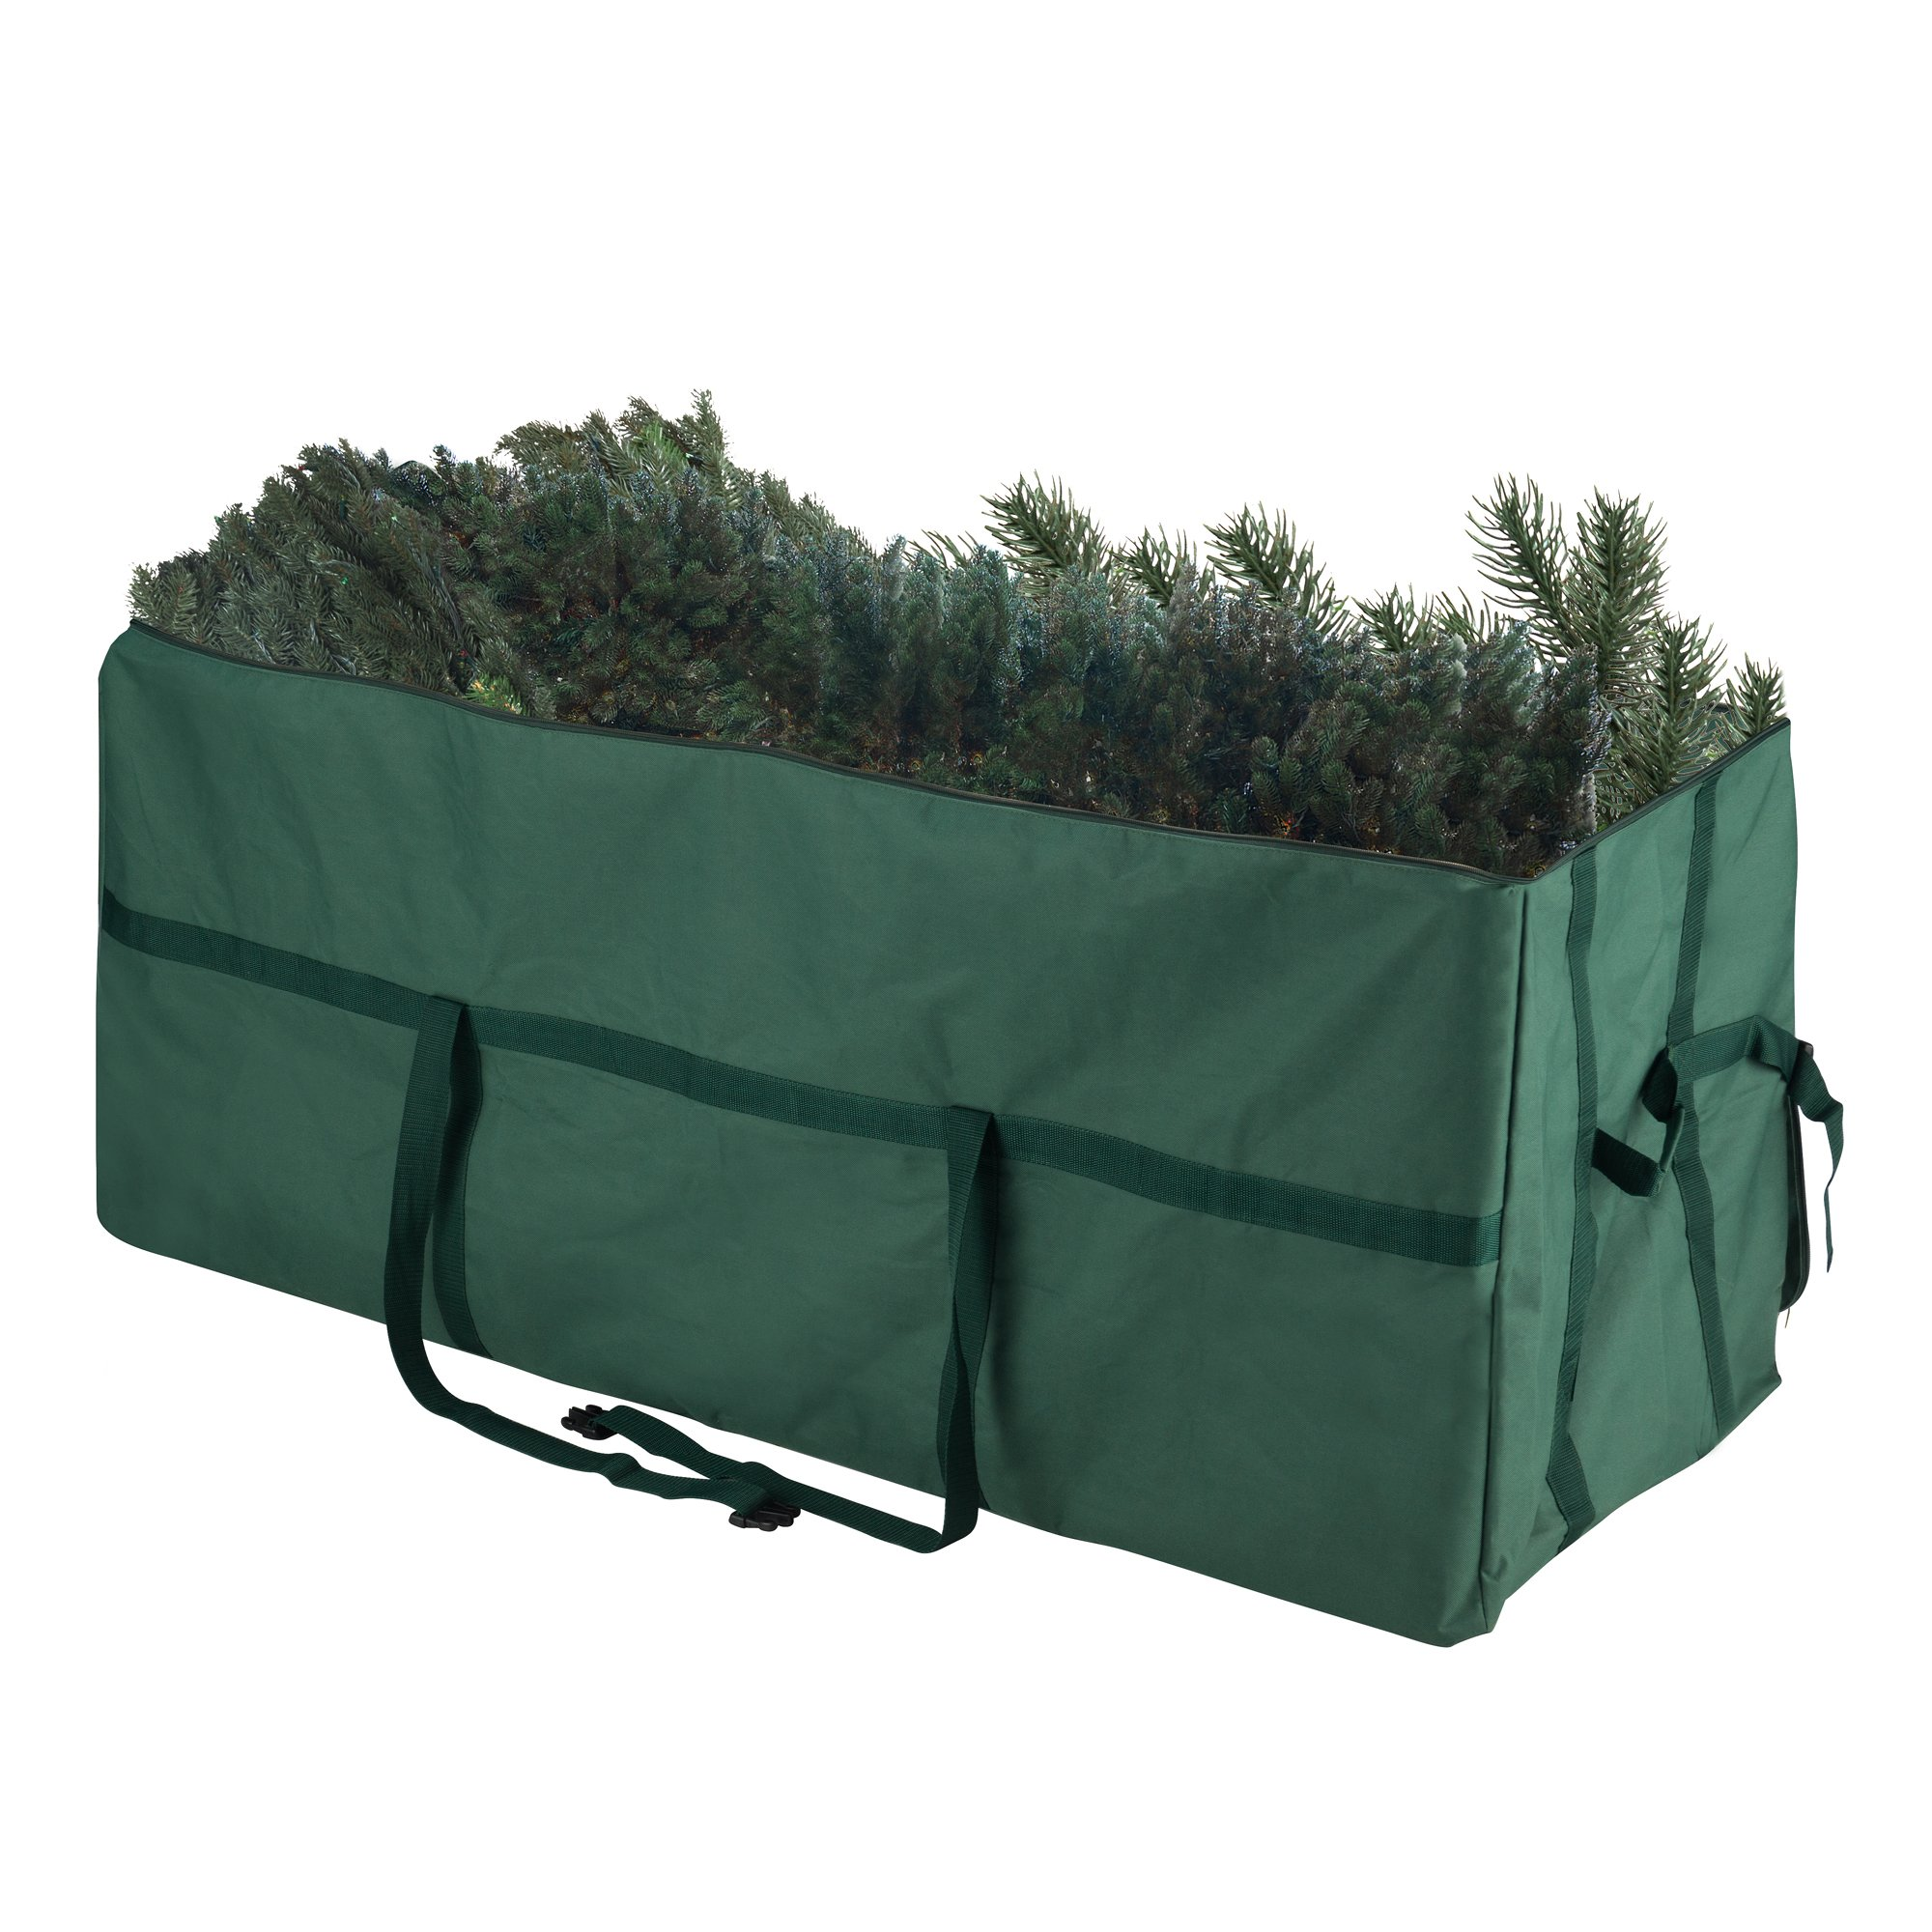 Tiny Tim Totes 83-DT5584 Heavy Duty | Premium Canvas Christmas Storage Bag | Large for 7.5 Foot Tree | Green